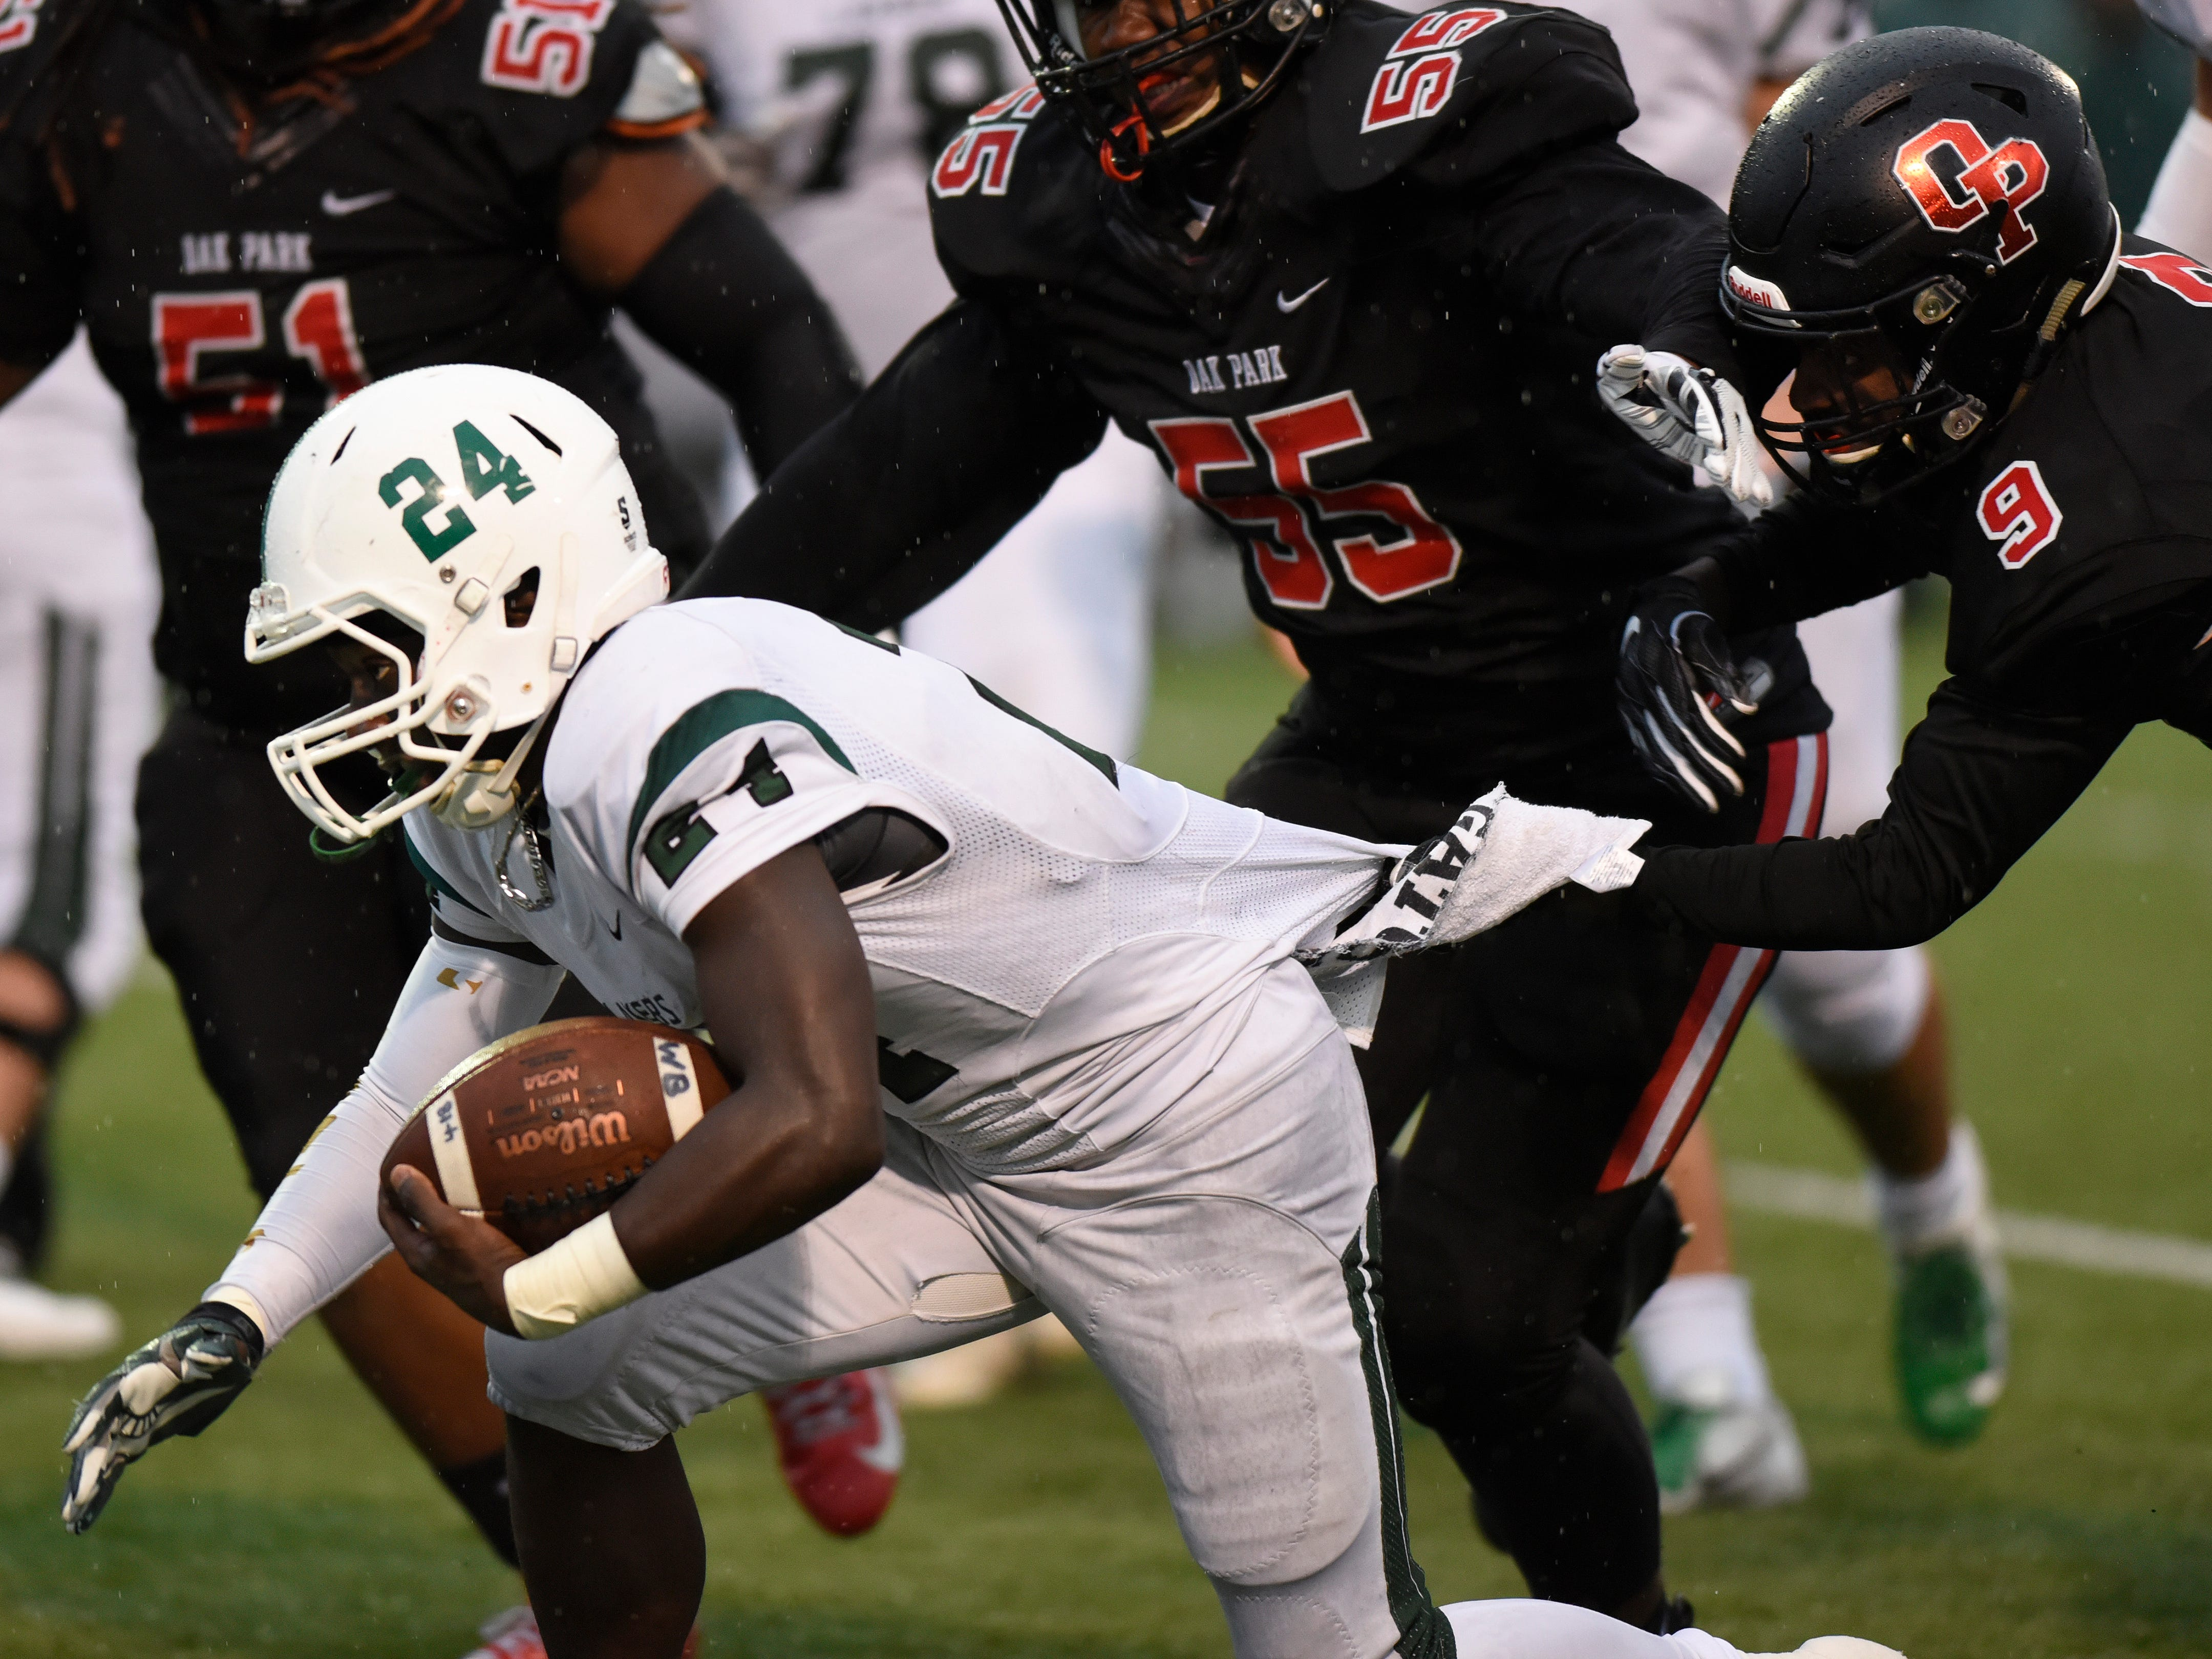 West Bloomfield running back Anthony May (24) runs for yardage and is tackled by Oak Park defender Corion Montgomery (9) during the first quarter.